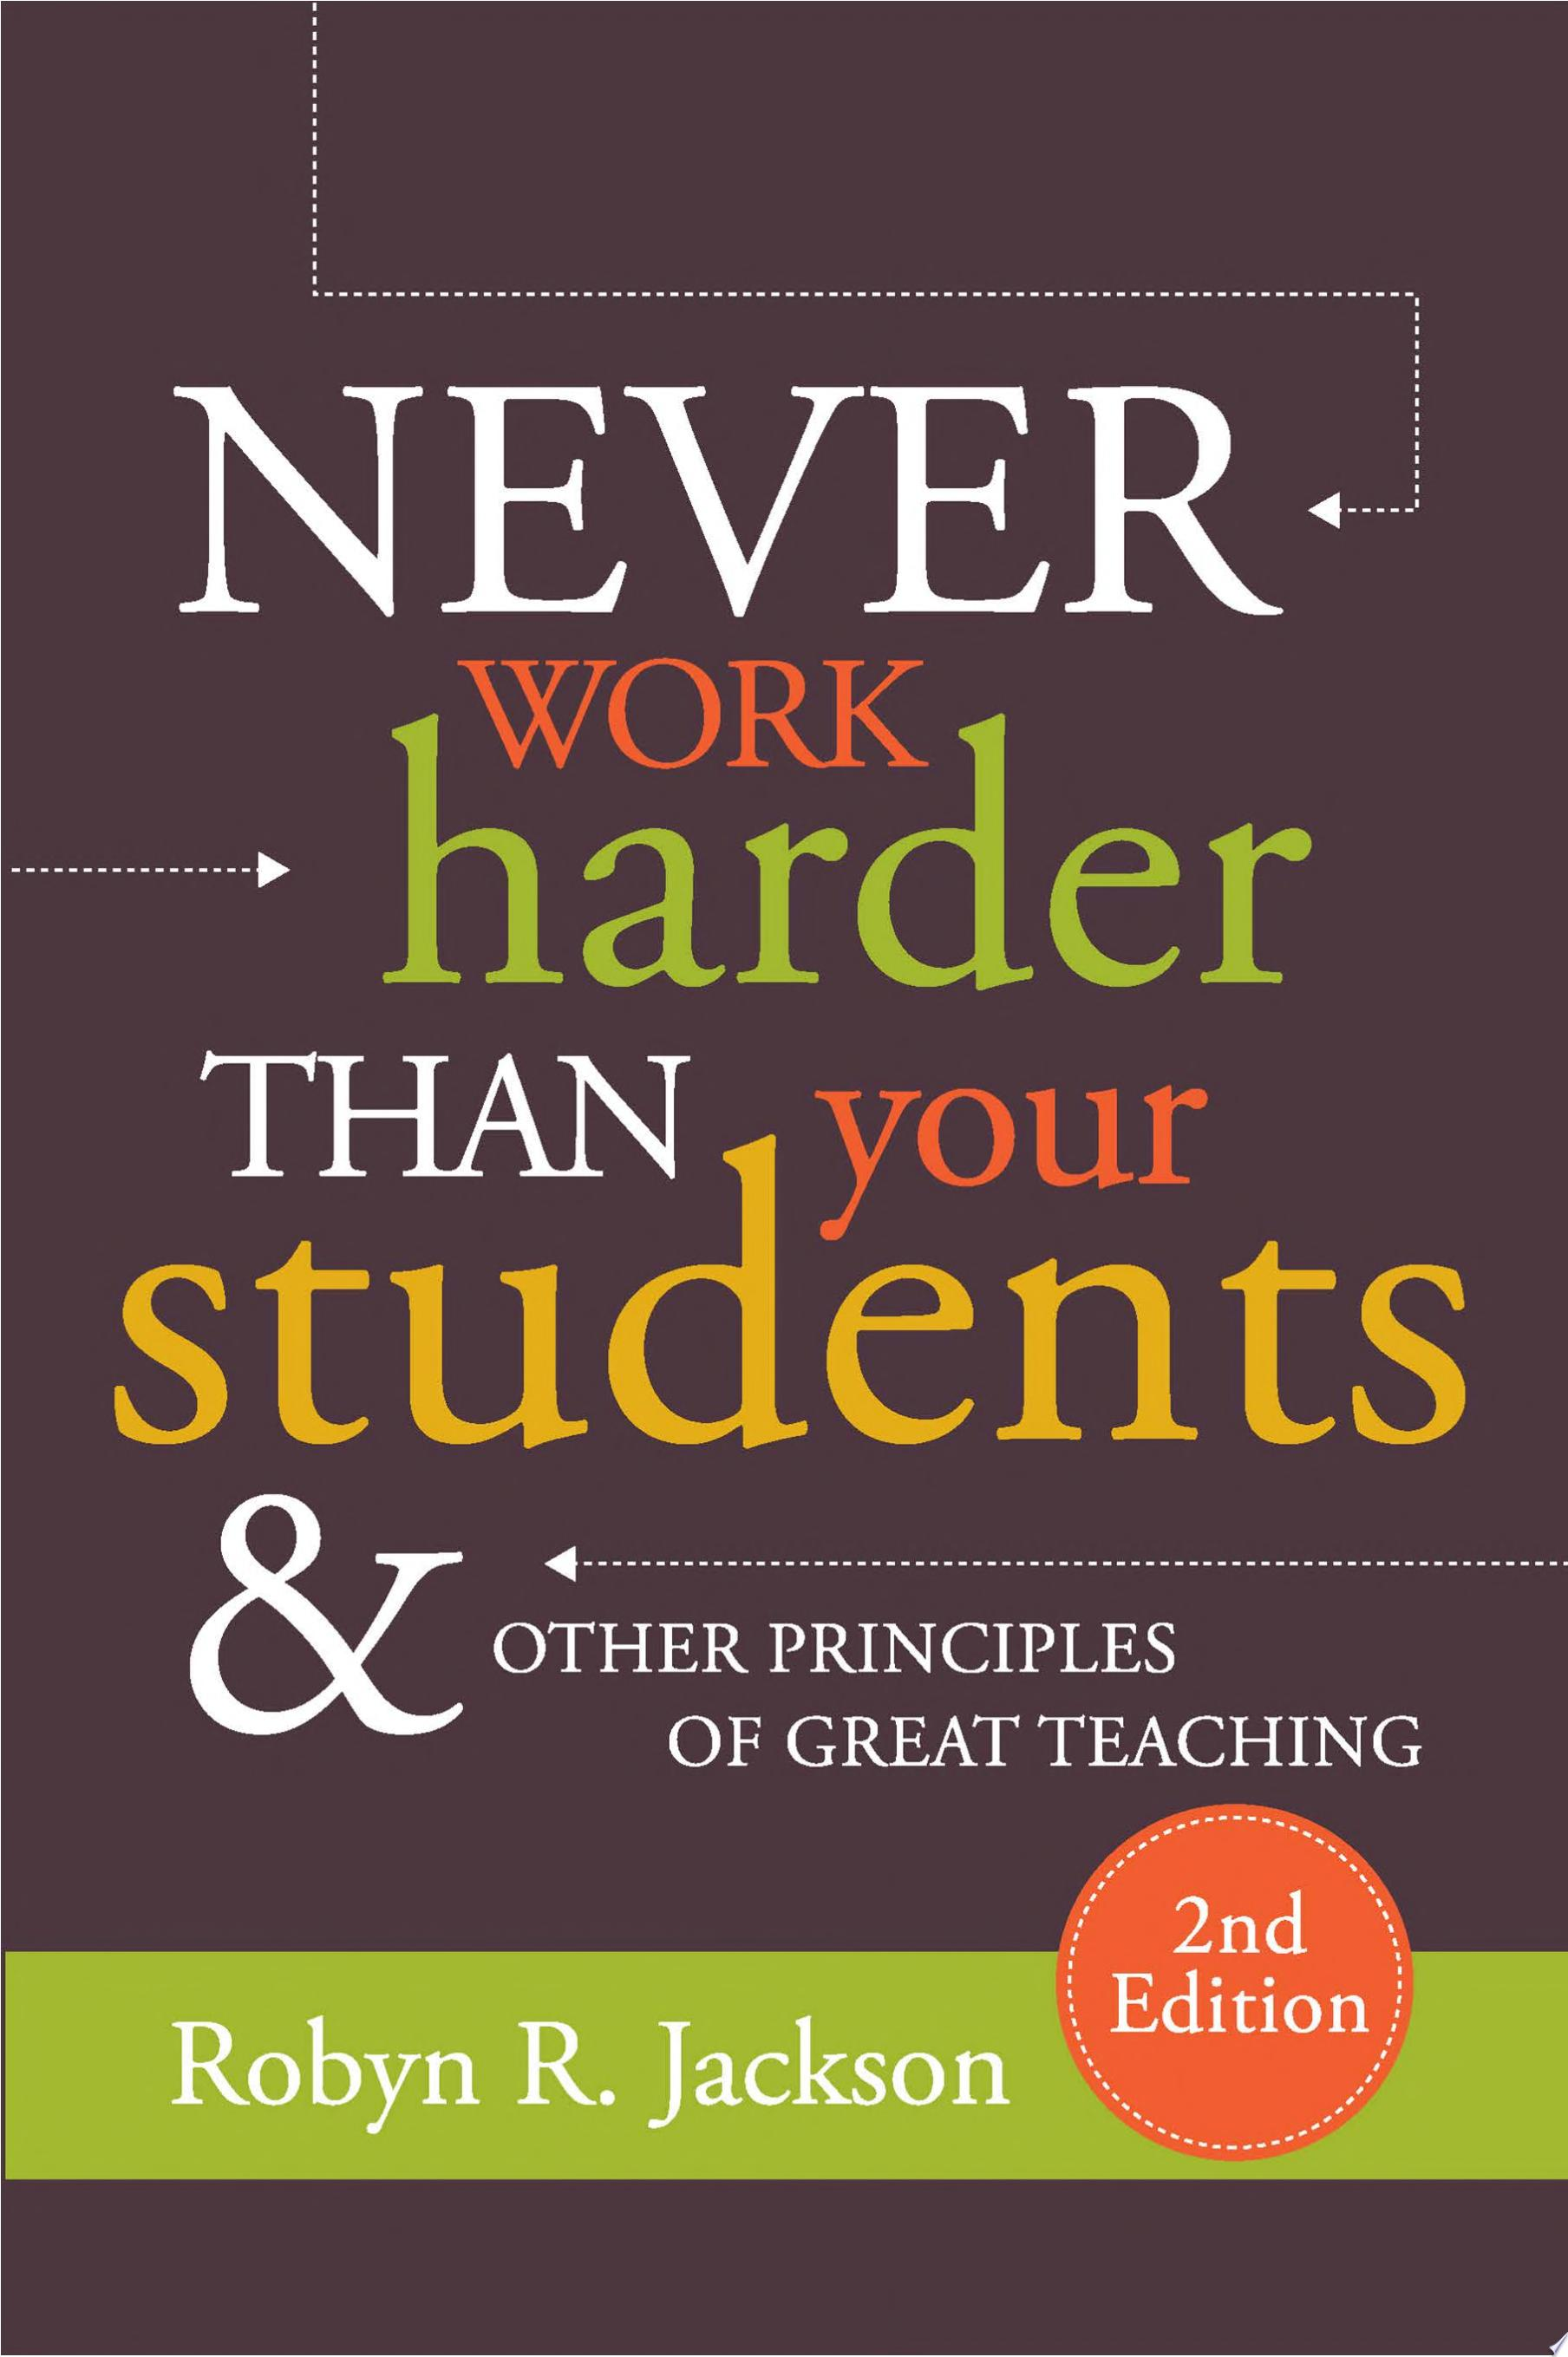 Never Work Harder Than Your Students and Other Principles of Great Teaching  2nd Edition